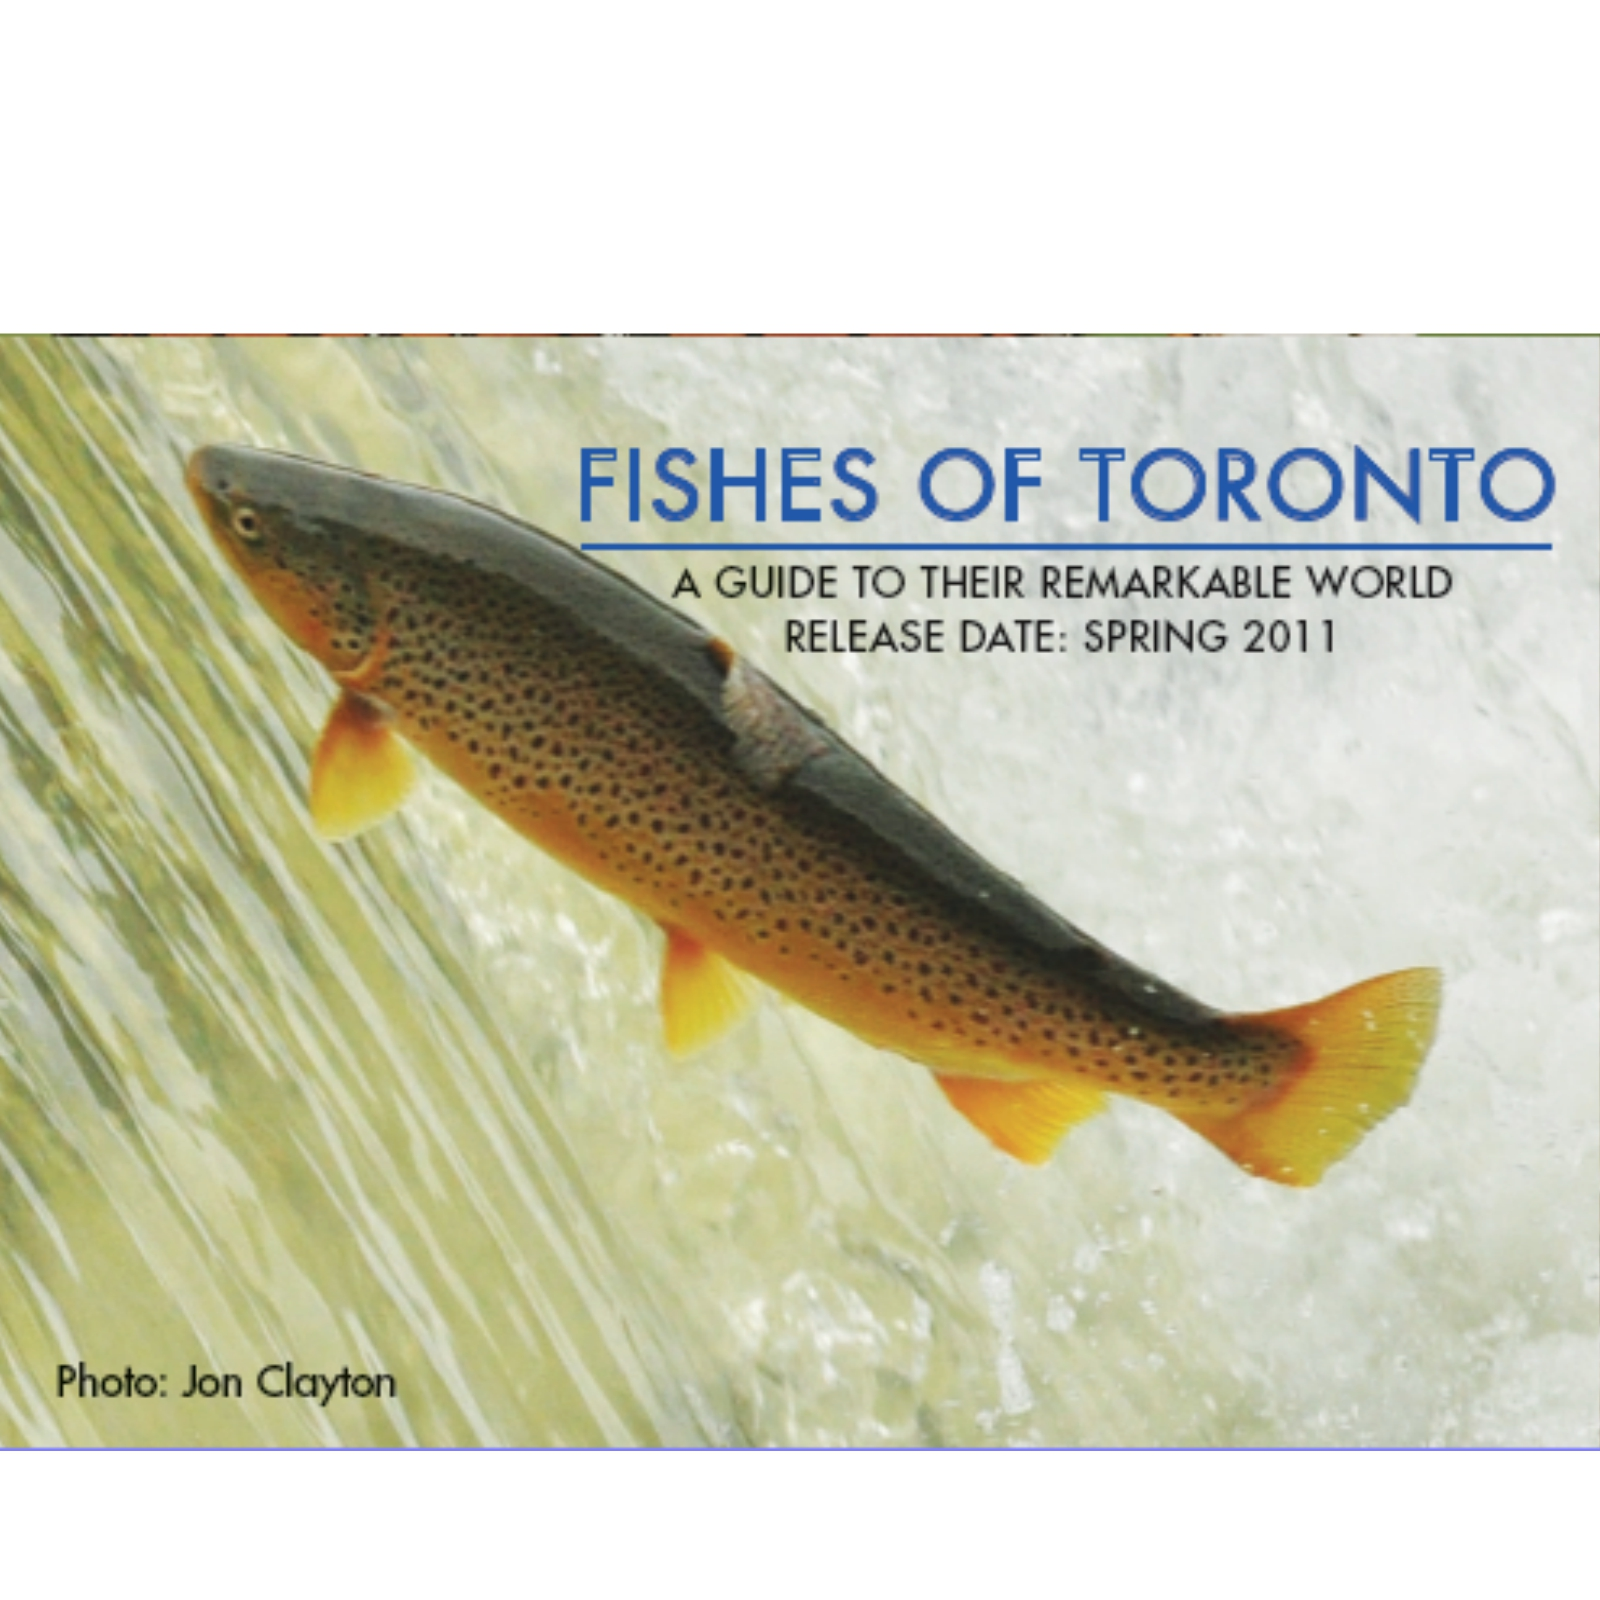 FISHES OF TORONTO PT.1